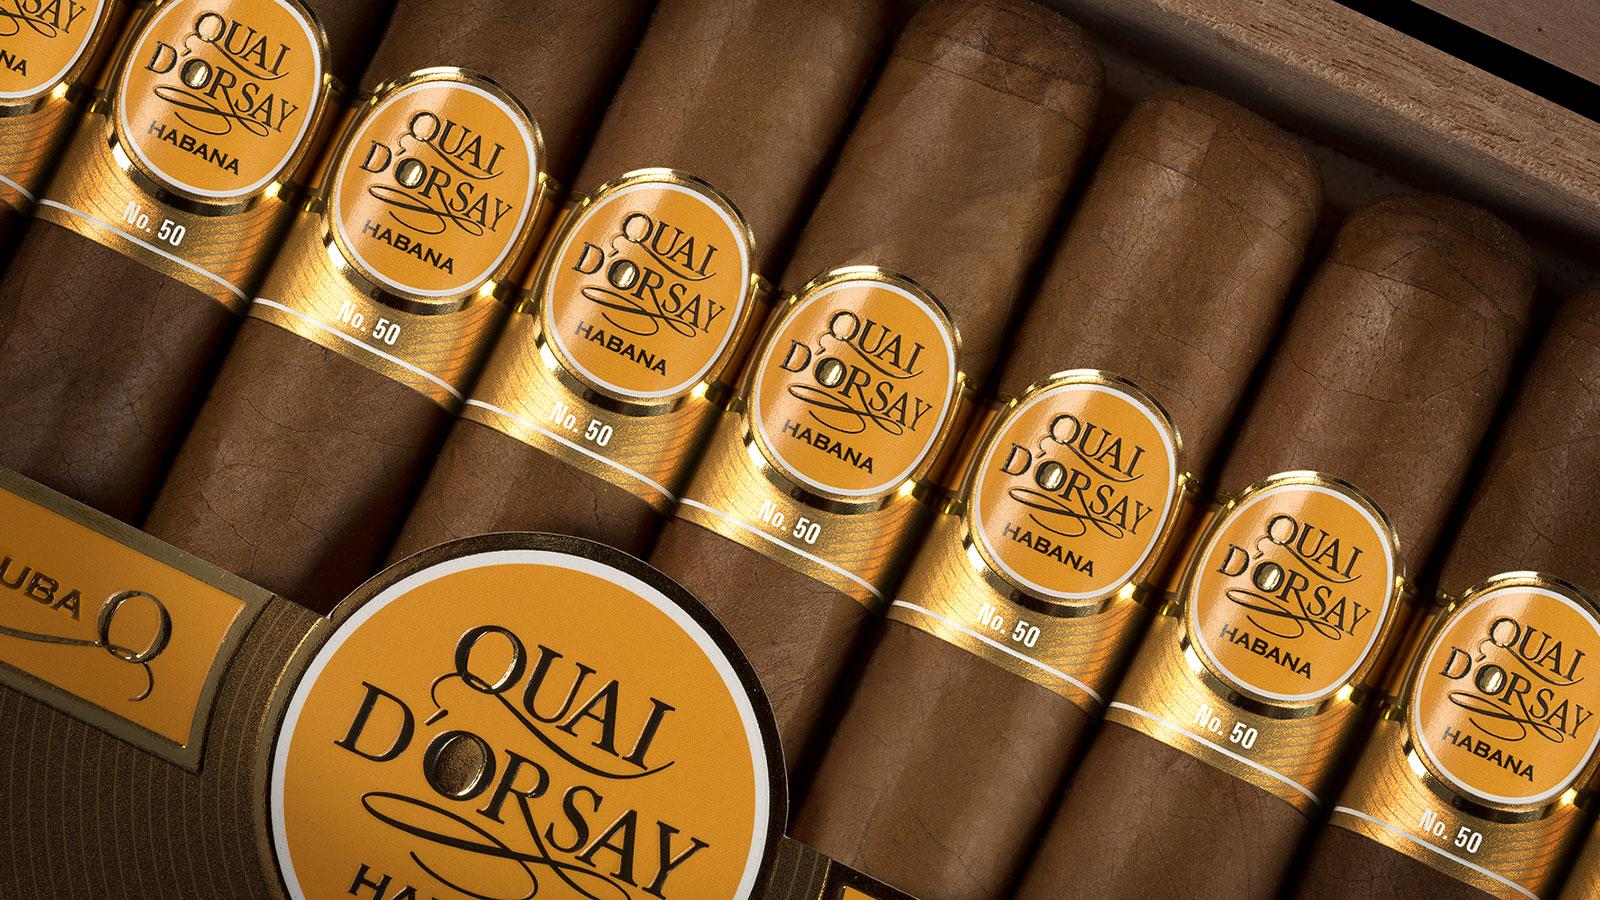 A Night For Cuba's Quai D'Orsay